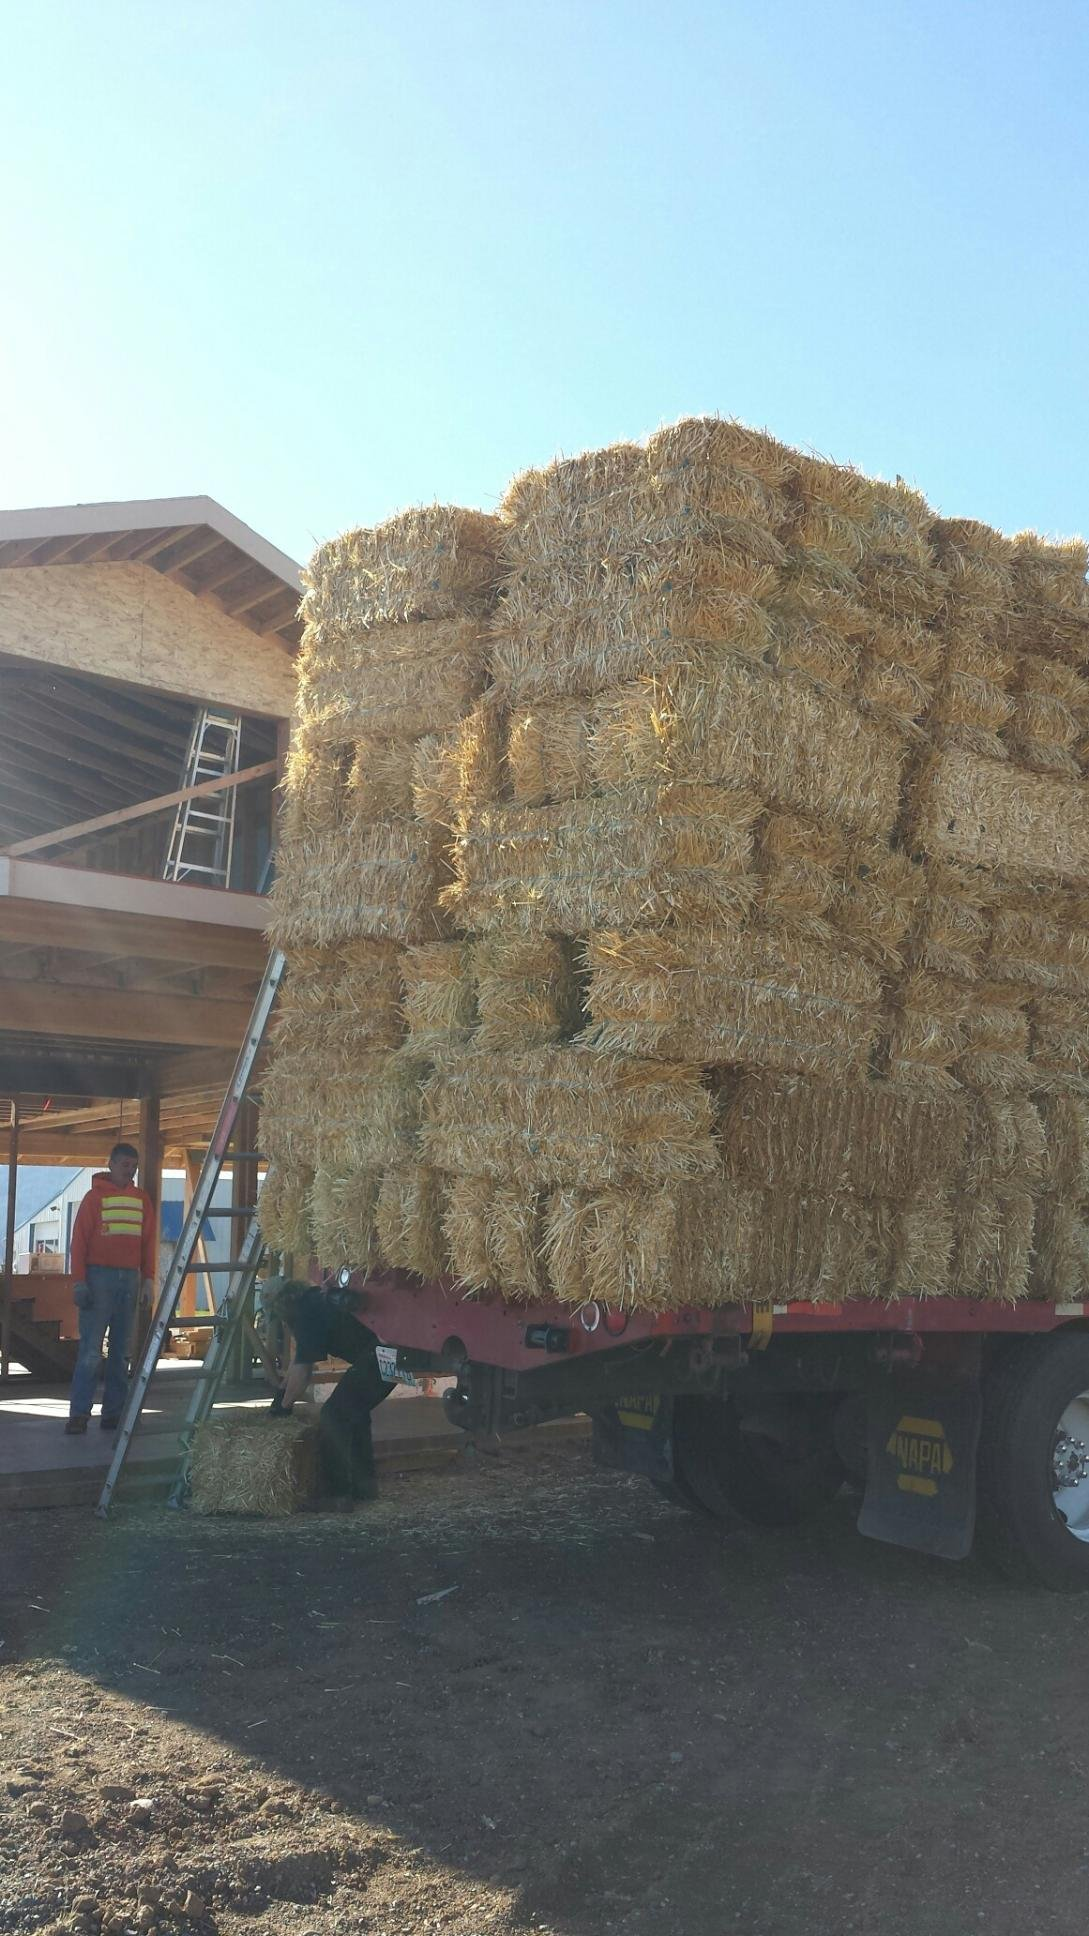 Straw Bales being dropped off at the Takaki's home